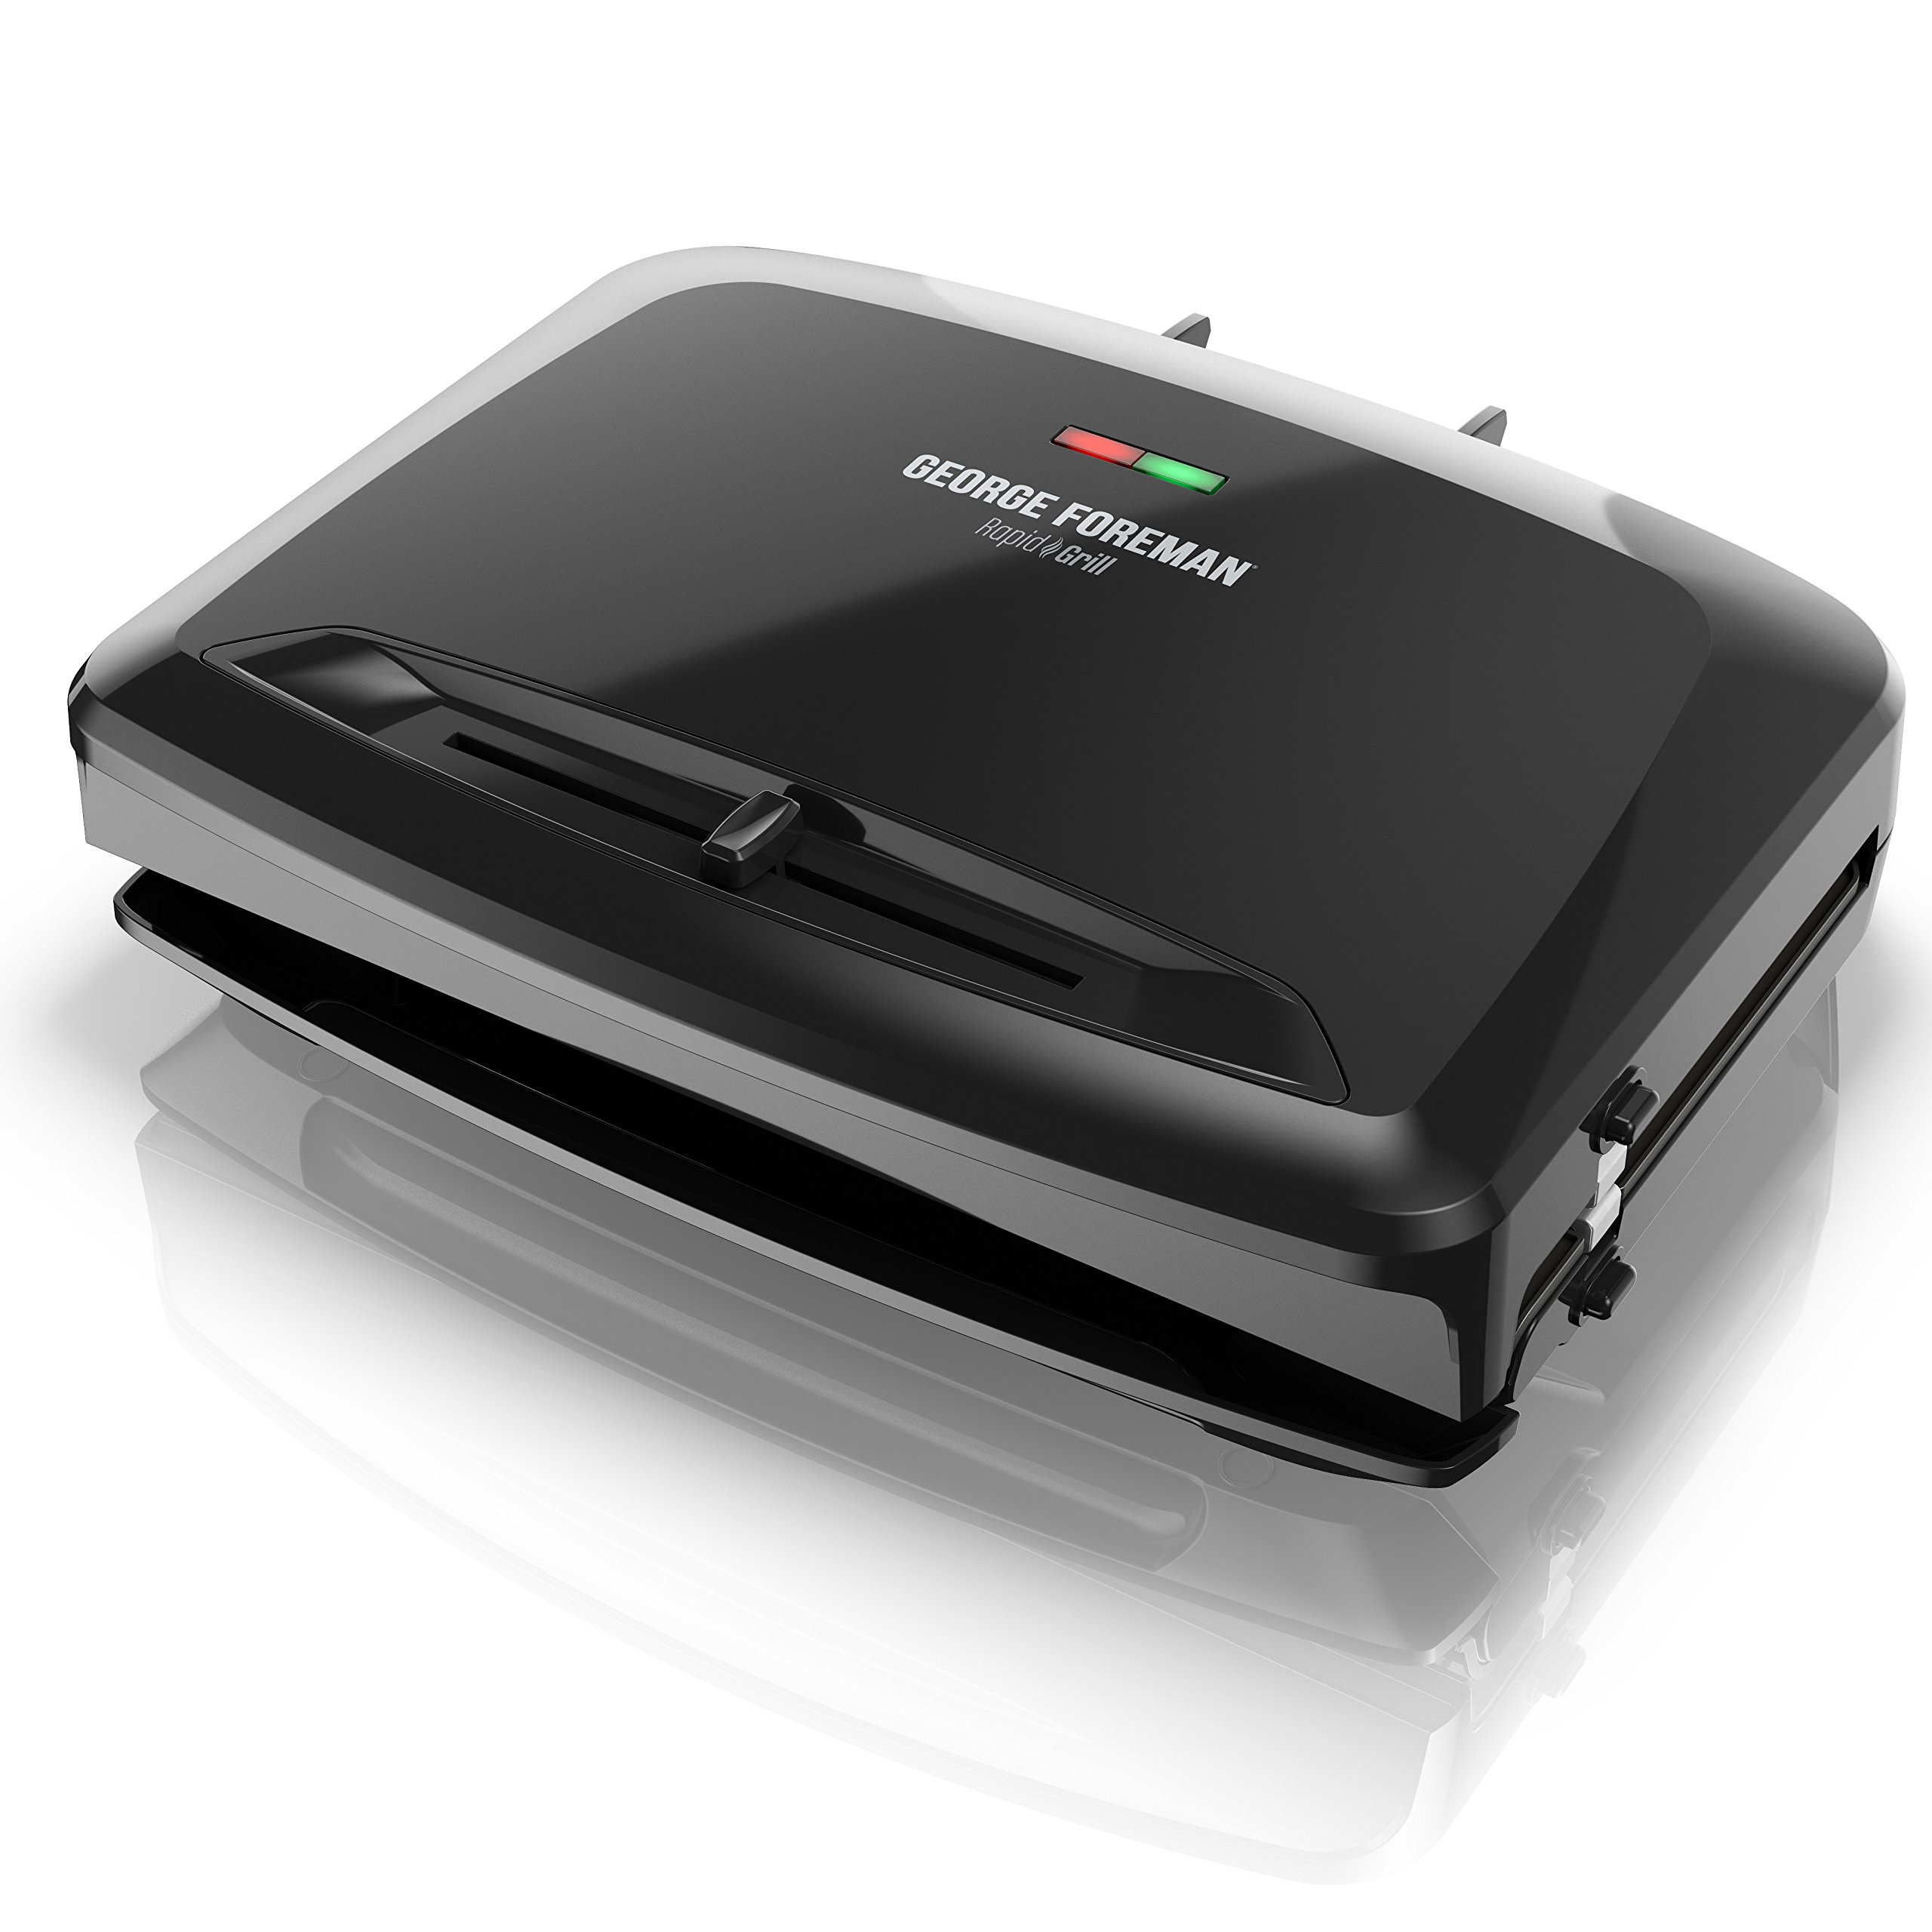 George Foreman Rapid Grill Series, 5-Serving Removable Plate Electric Indoor Grill and Panini Press, Black, RPGV3801BK by George Foreman